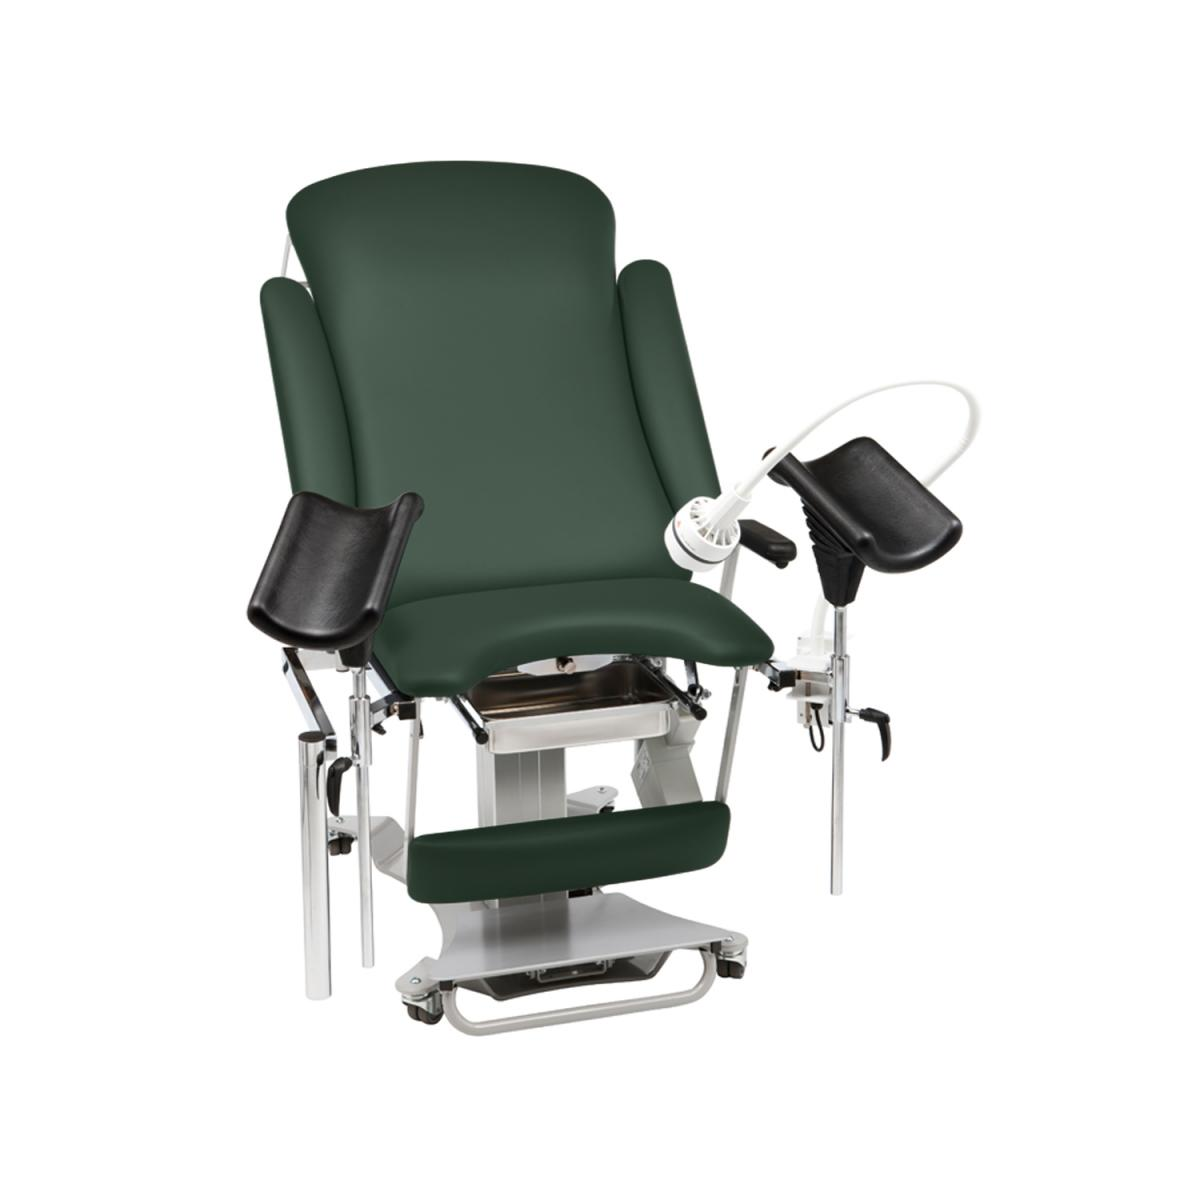 Gynaecological examination chair 480